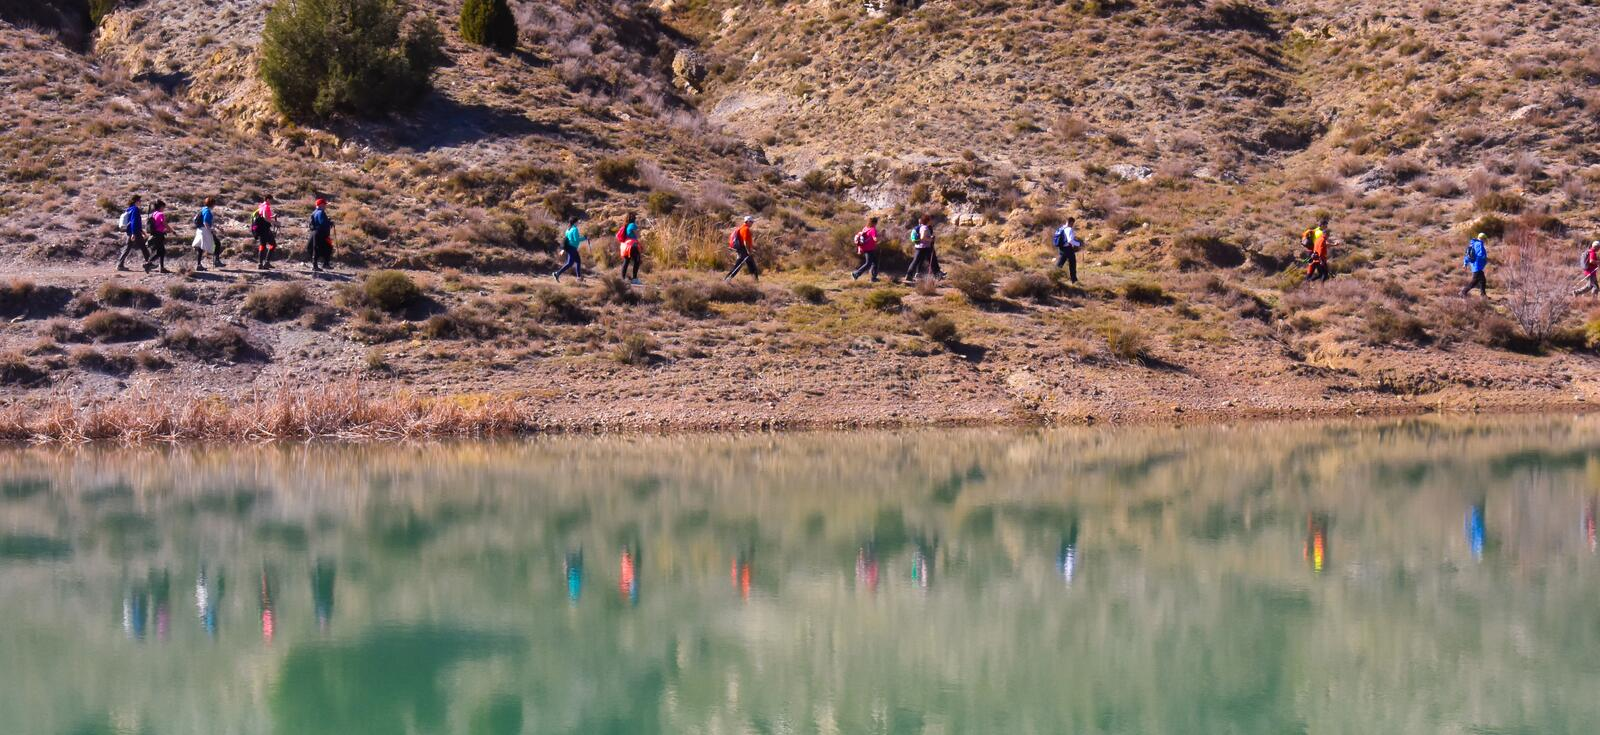 group of adult people with colorful backpack trekking on a path of sand and stones walking next to a lake reflecting their images stock photos